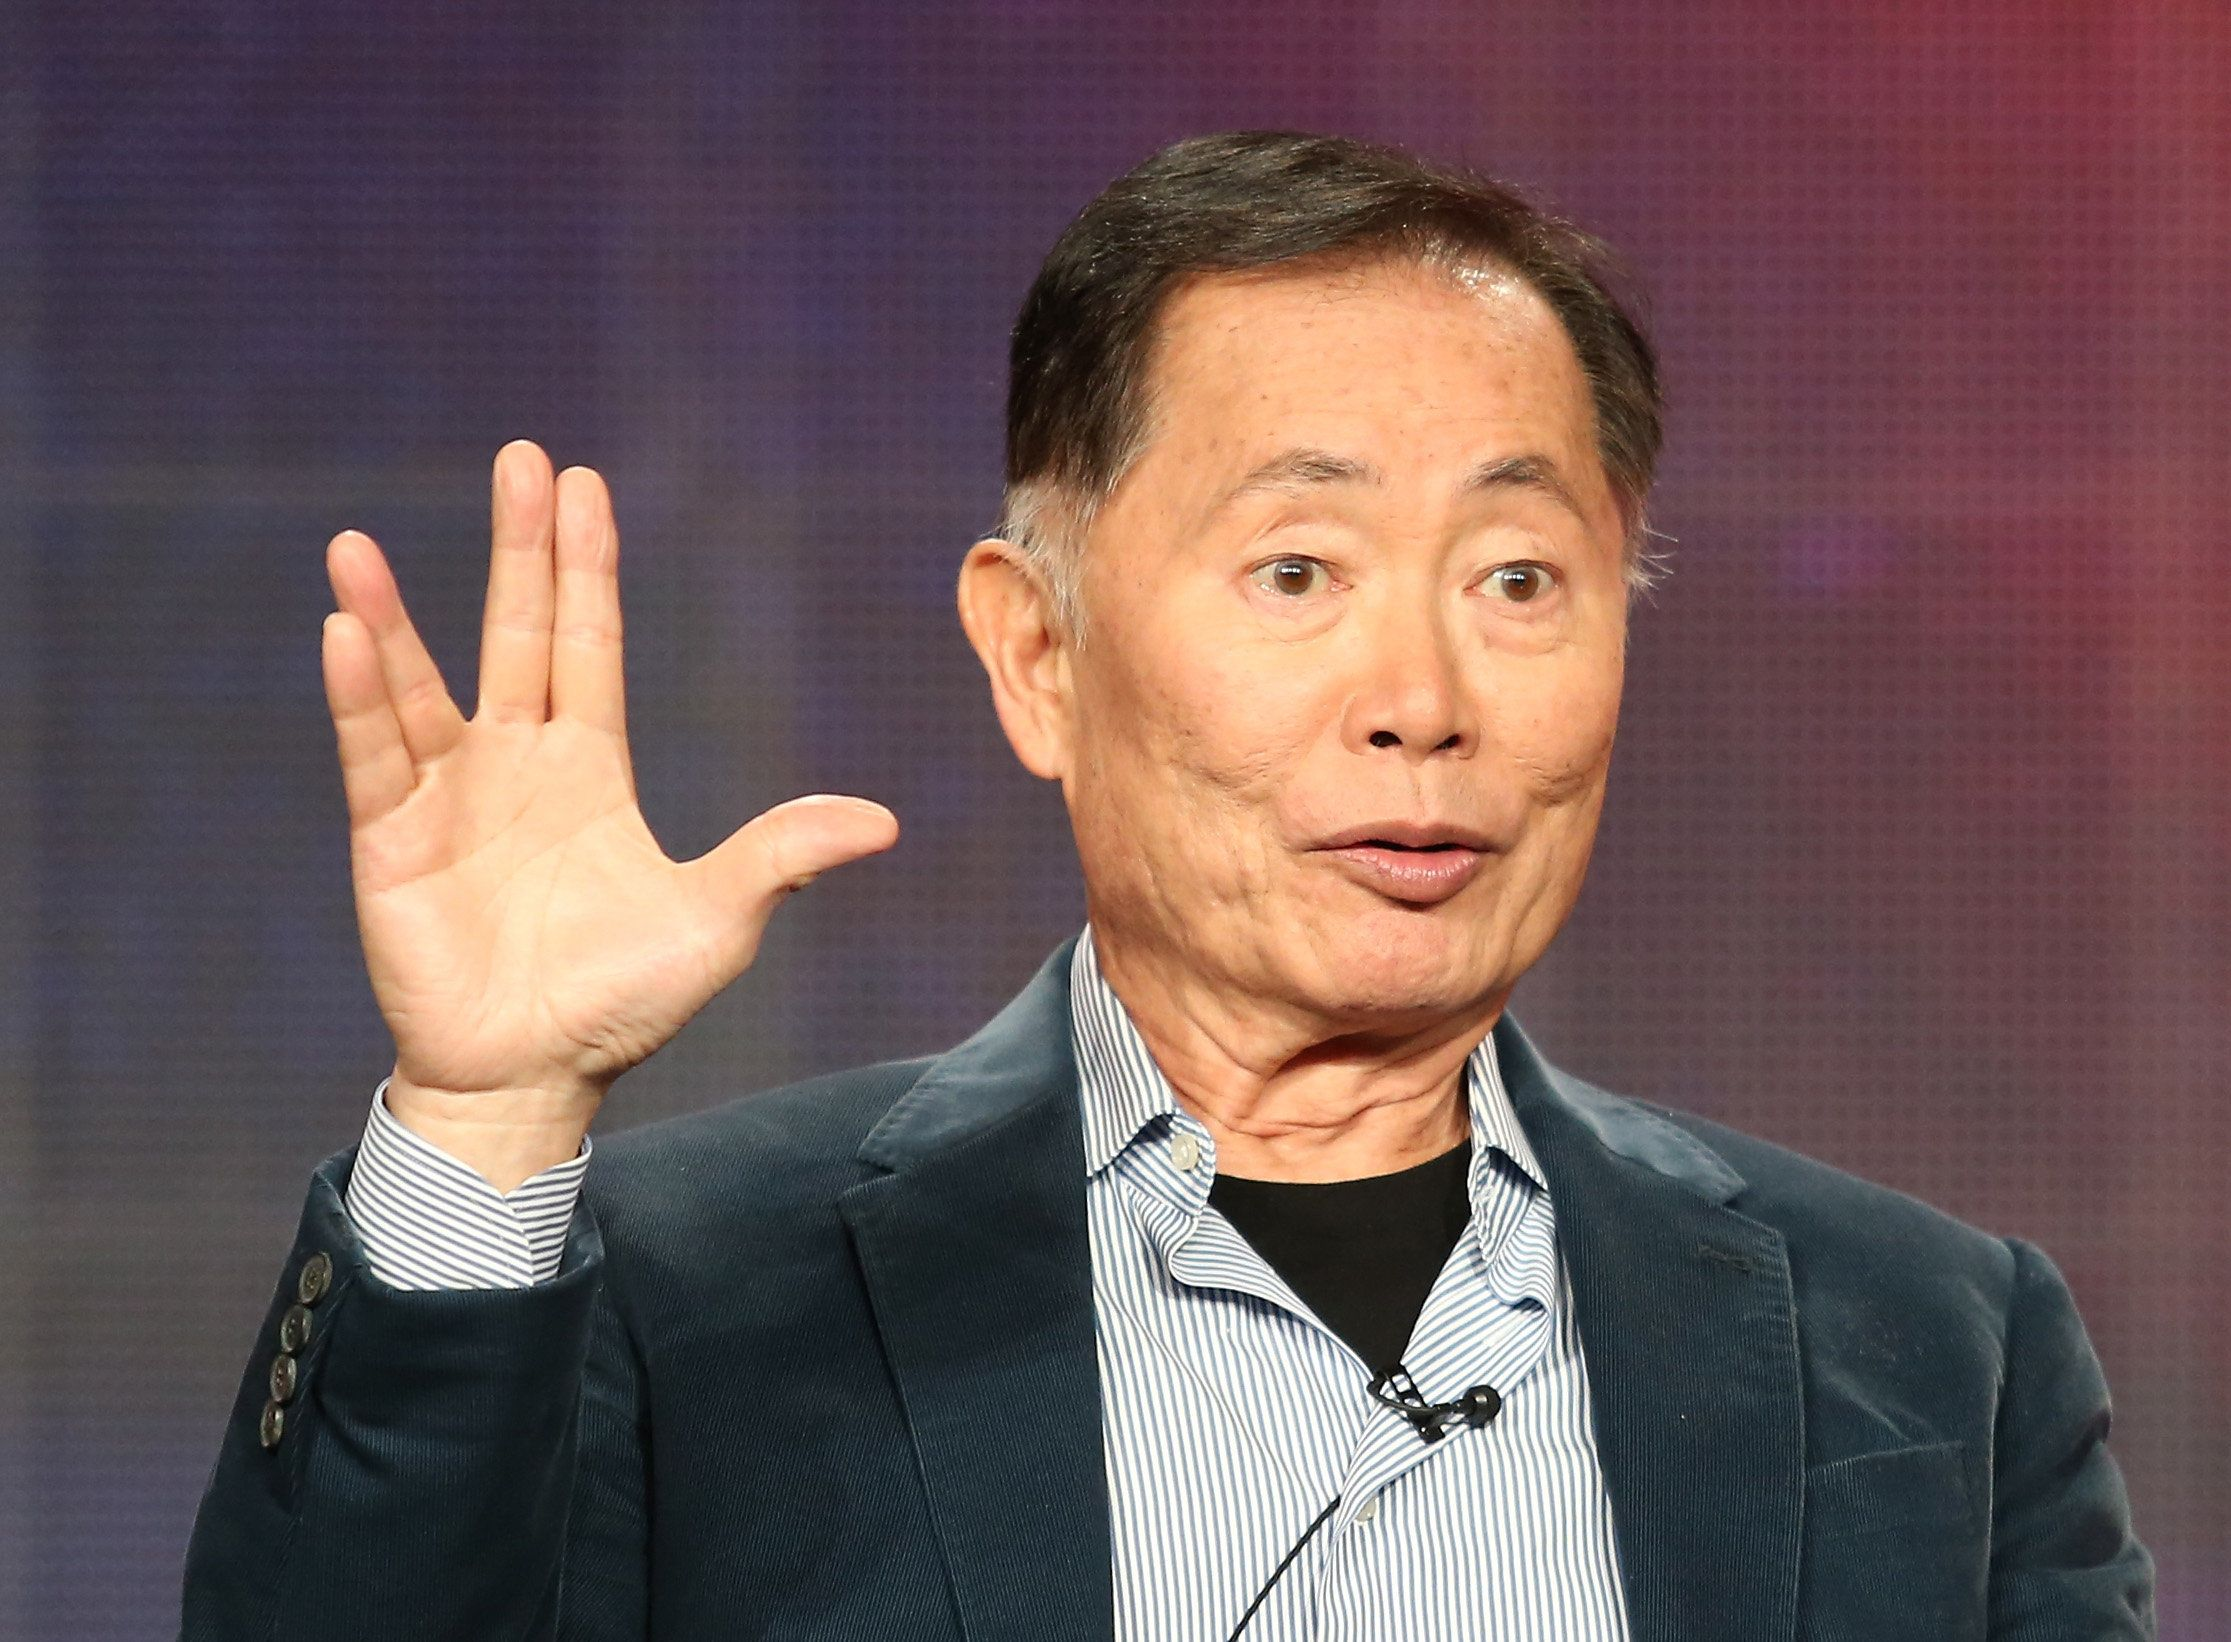 A lot of people seem to want George Takei to run for Congress.